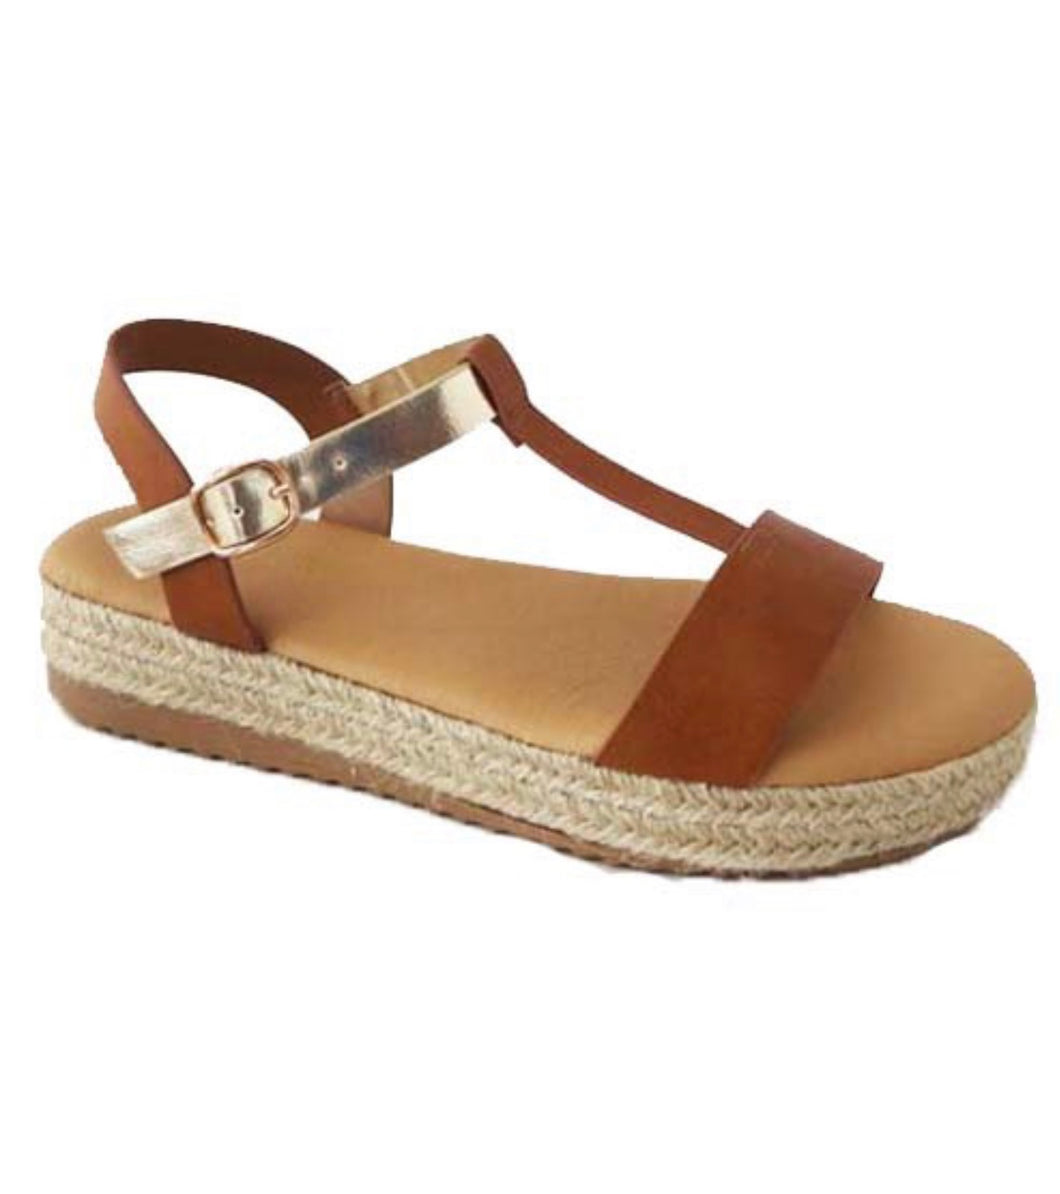 Espadrille Sandals (Tan)